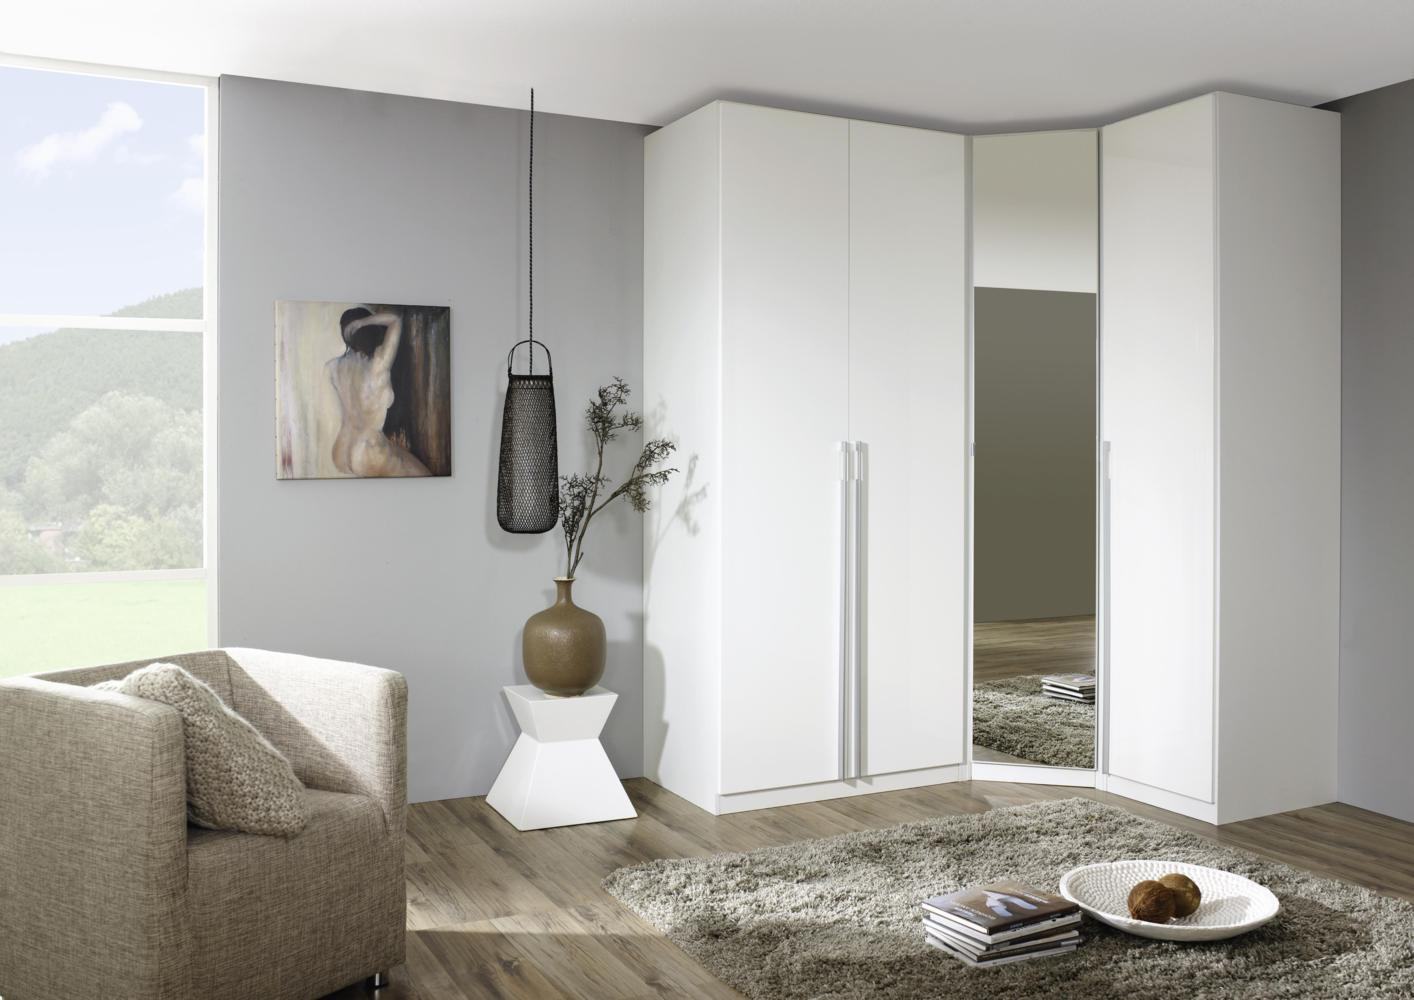 acheter votre dressing d 39 angle contemporain portes battantes blanches et miroir chez simeuble. Black Bedroom Furniture Sets. Home Design Ideas